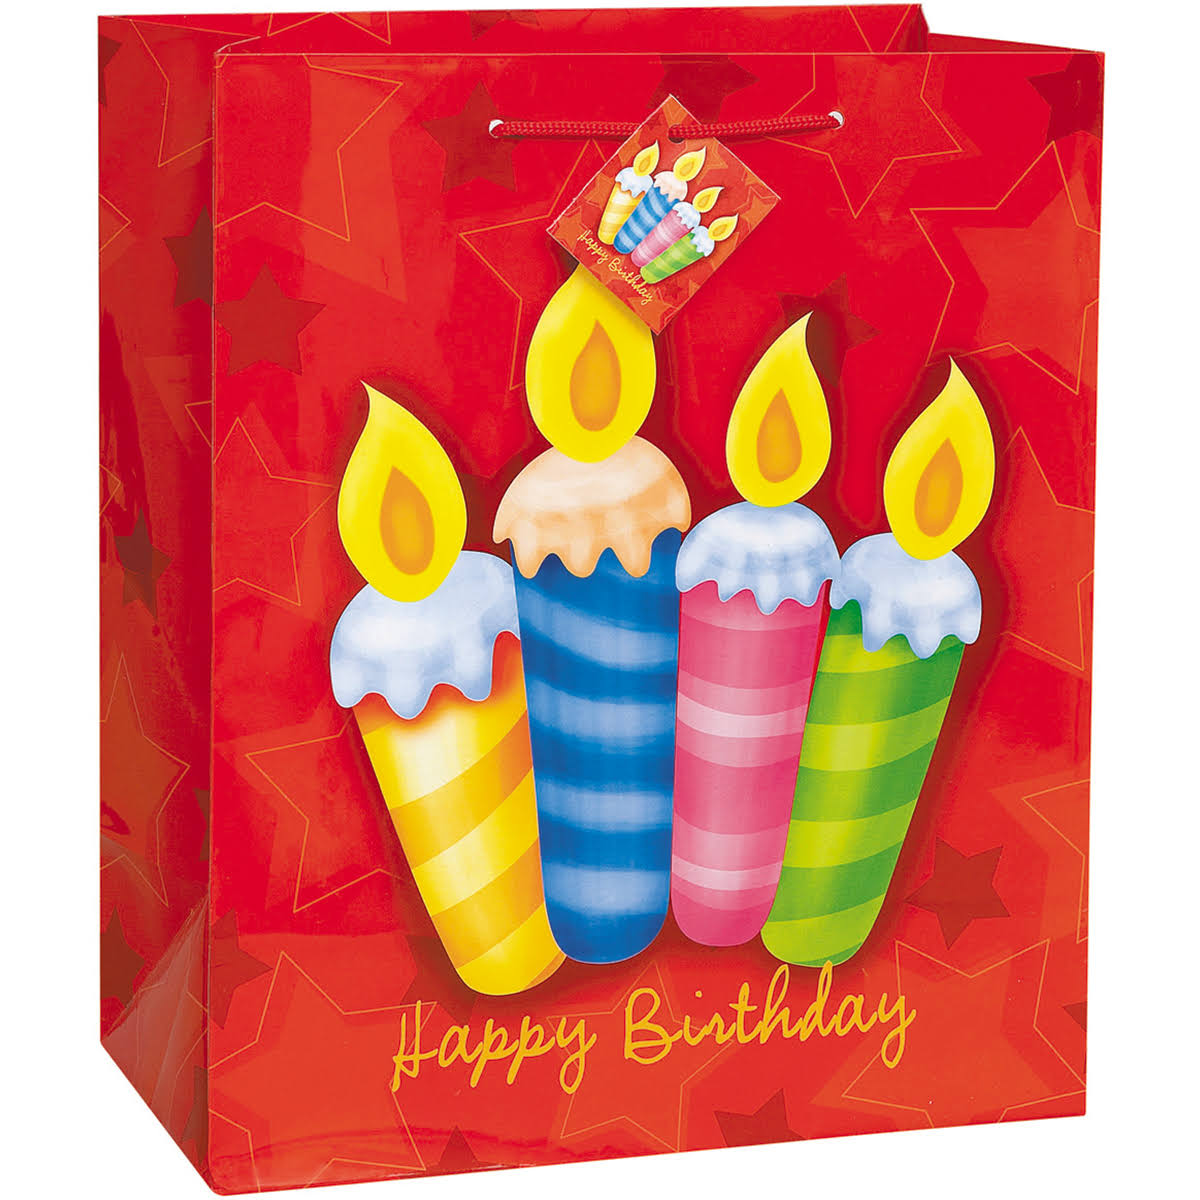 "Birthday Surprise Gift Bag Assortment 18""x13"" 3 Each of 4 Designs"